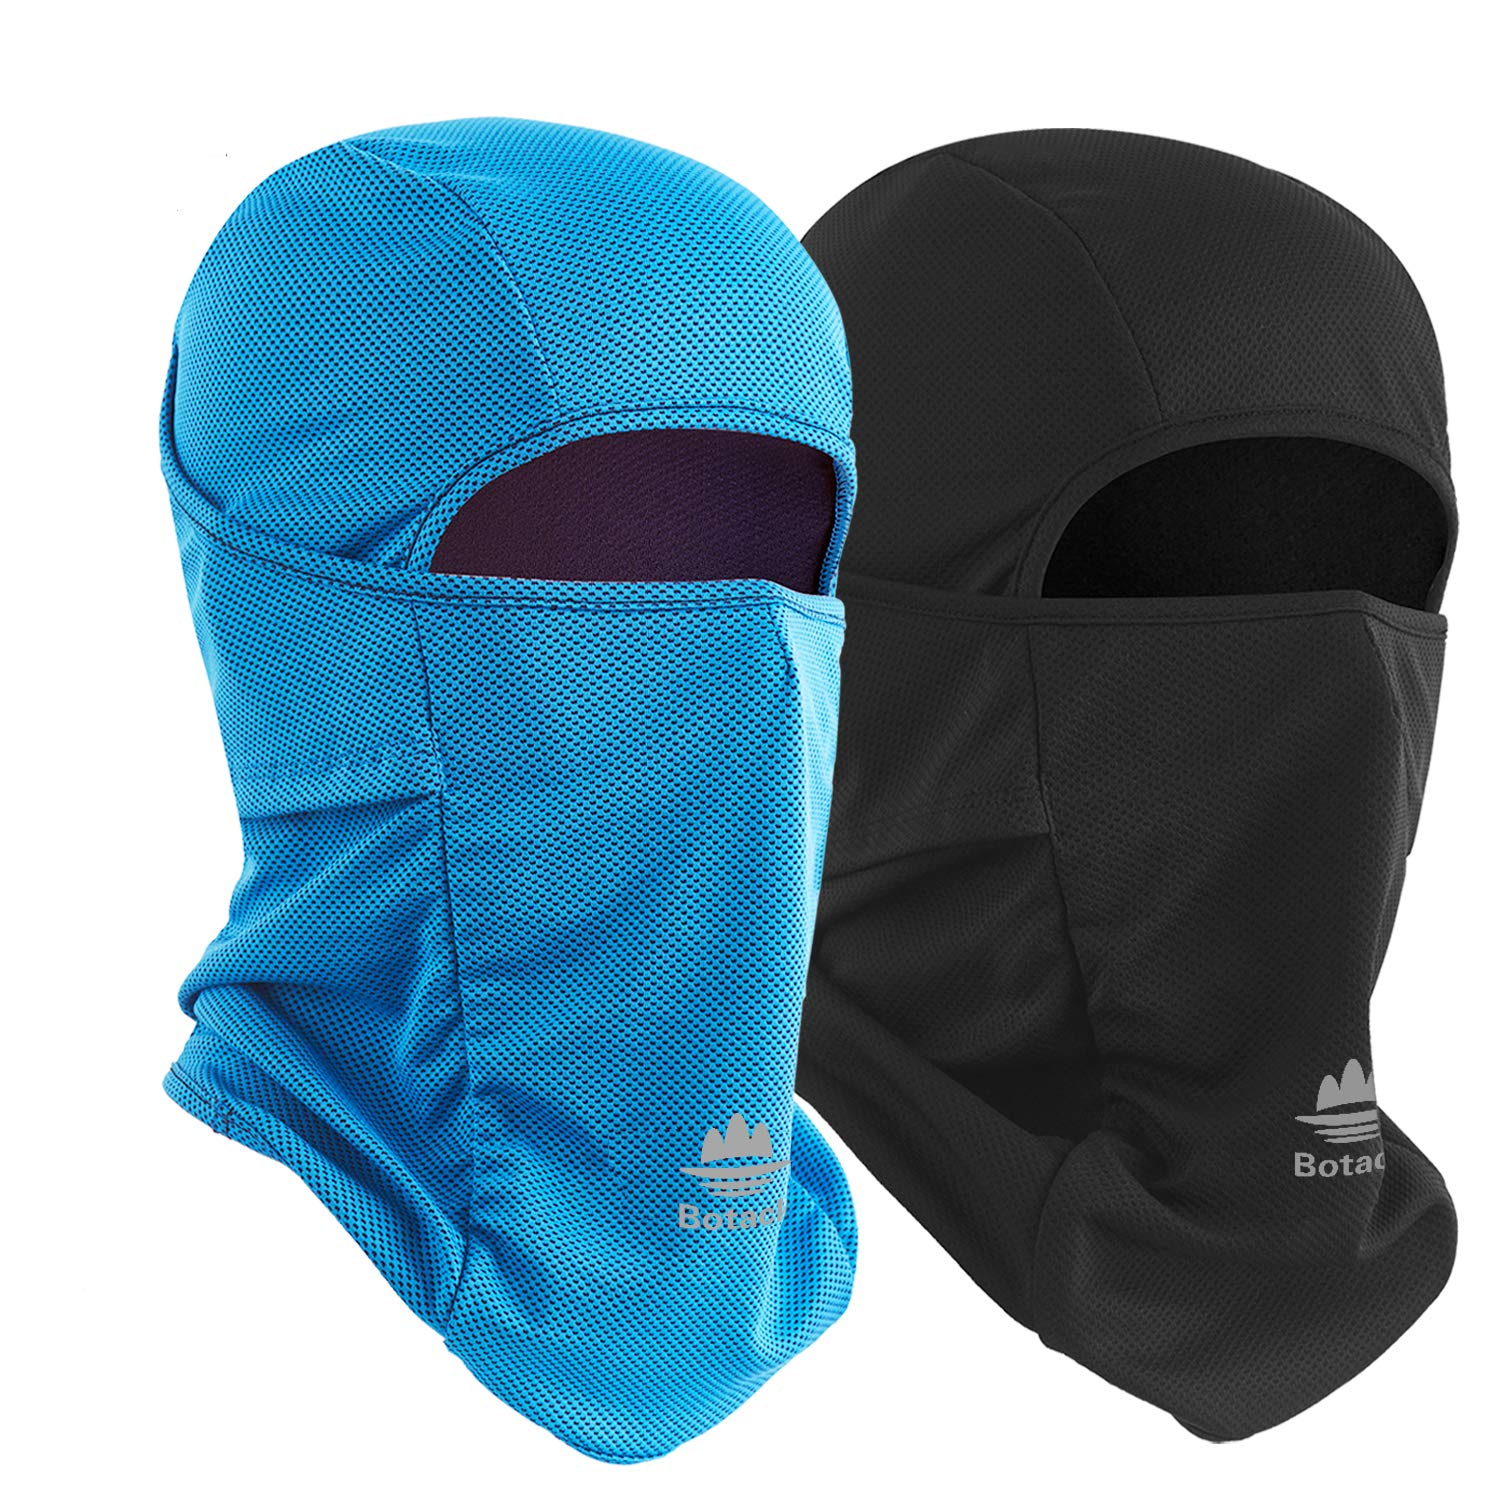 Botack Balaclava UV Protect Ice Cooling Face Mask Dust Wind Breathable Balaclava Gaiter Cycling Motor Neck Mask for Men Women